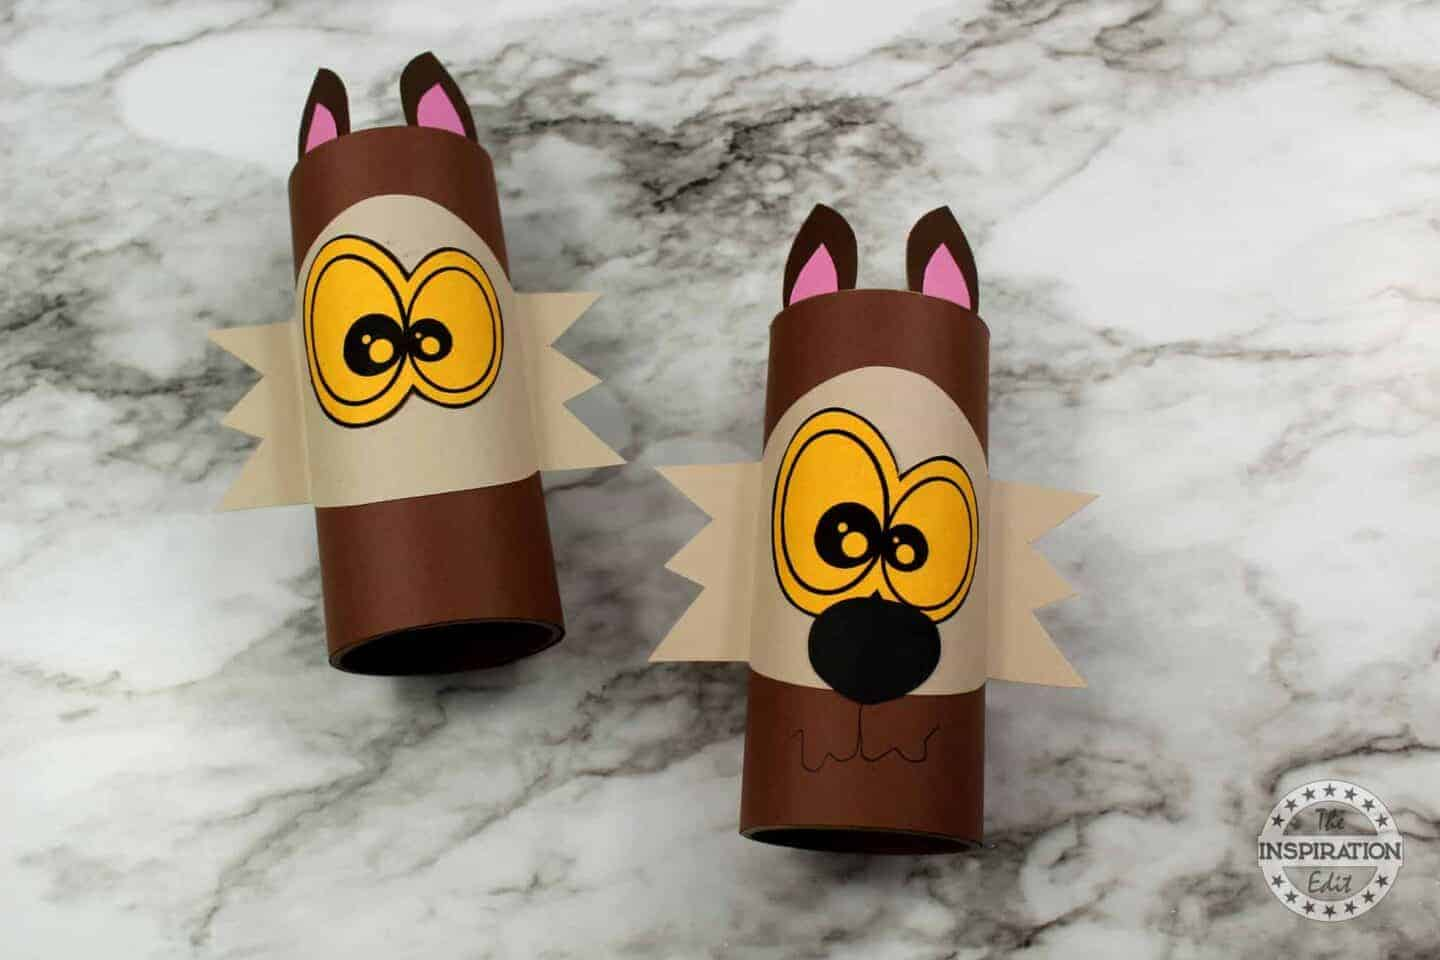 WEREWOLF CRAFT for kids made from a toilet roll